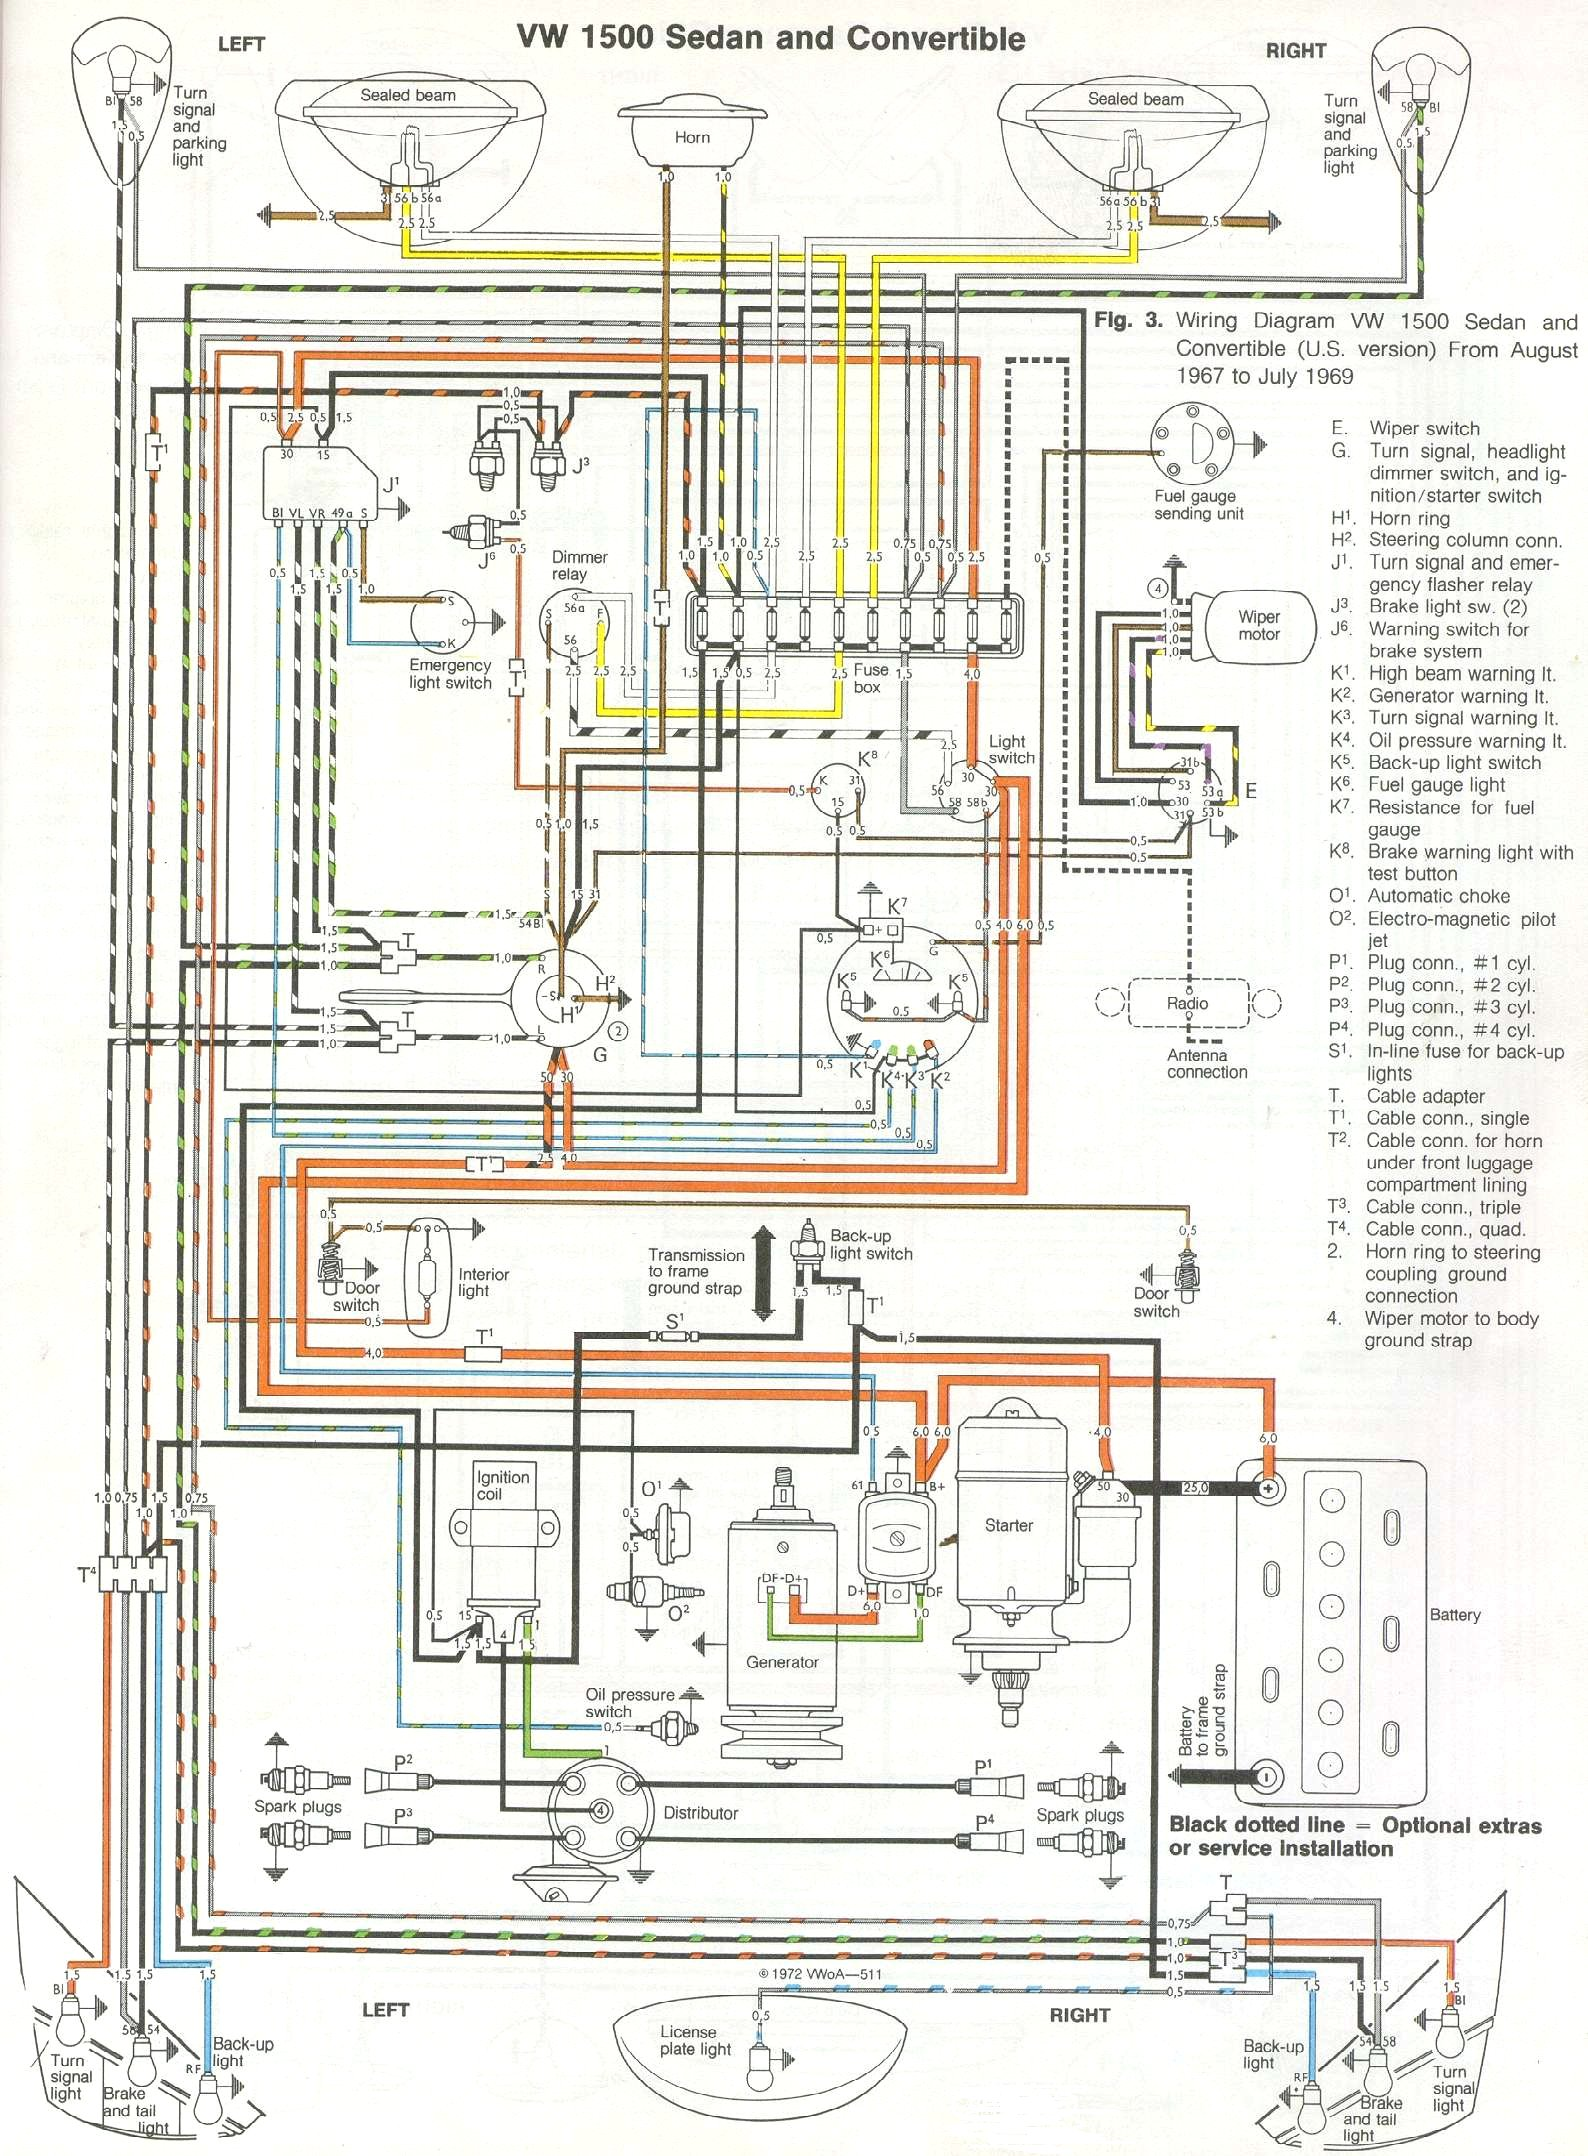 bug_6869 1969 71 beetle wiring diagram thegoldenbug com vw beetle wiring diagram at mr168.co